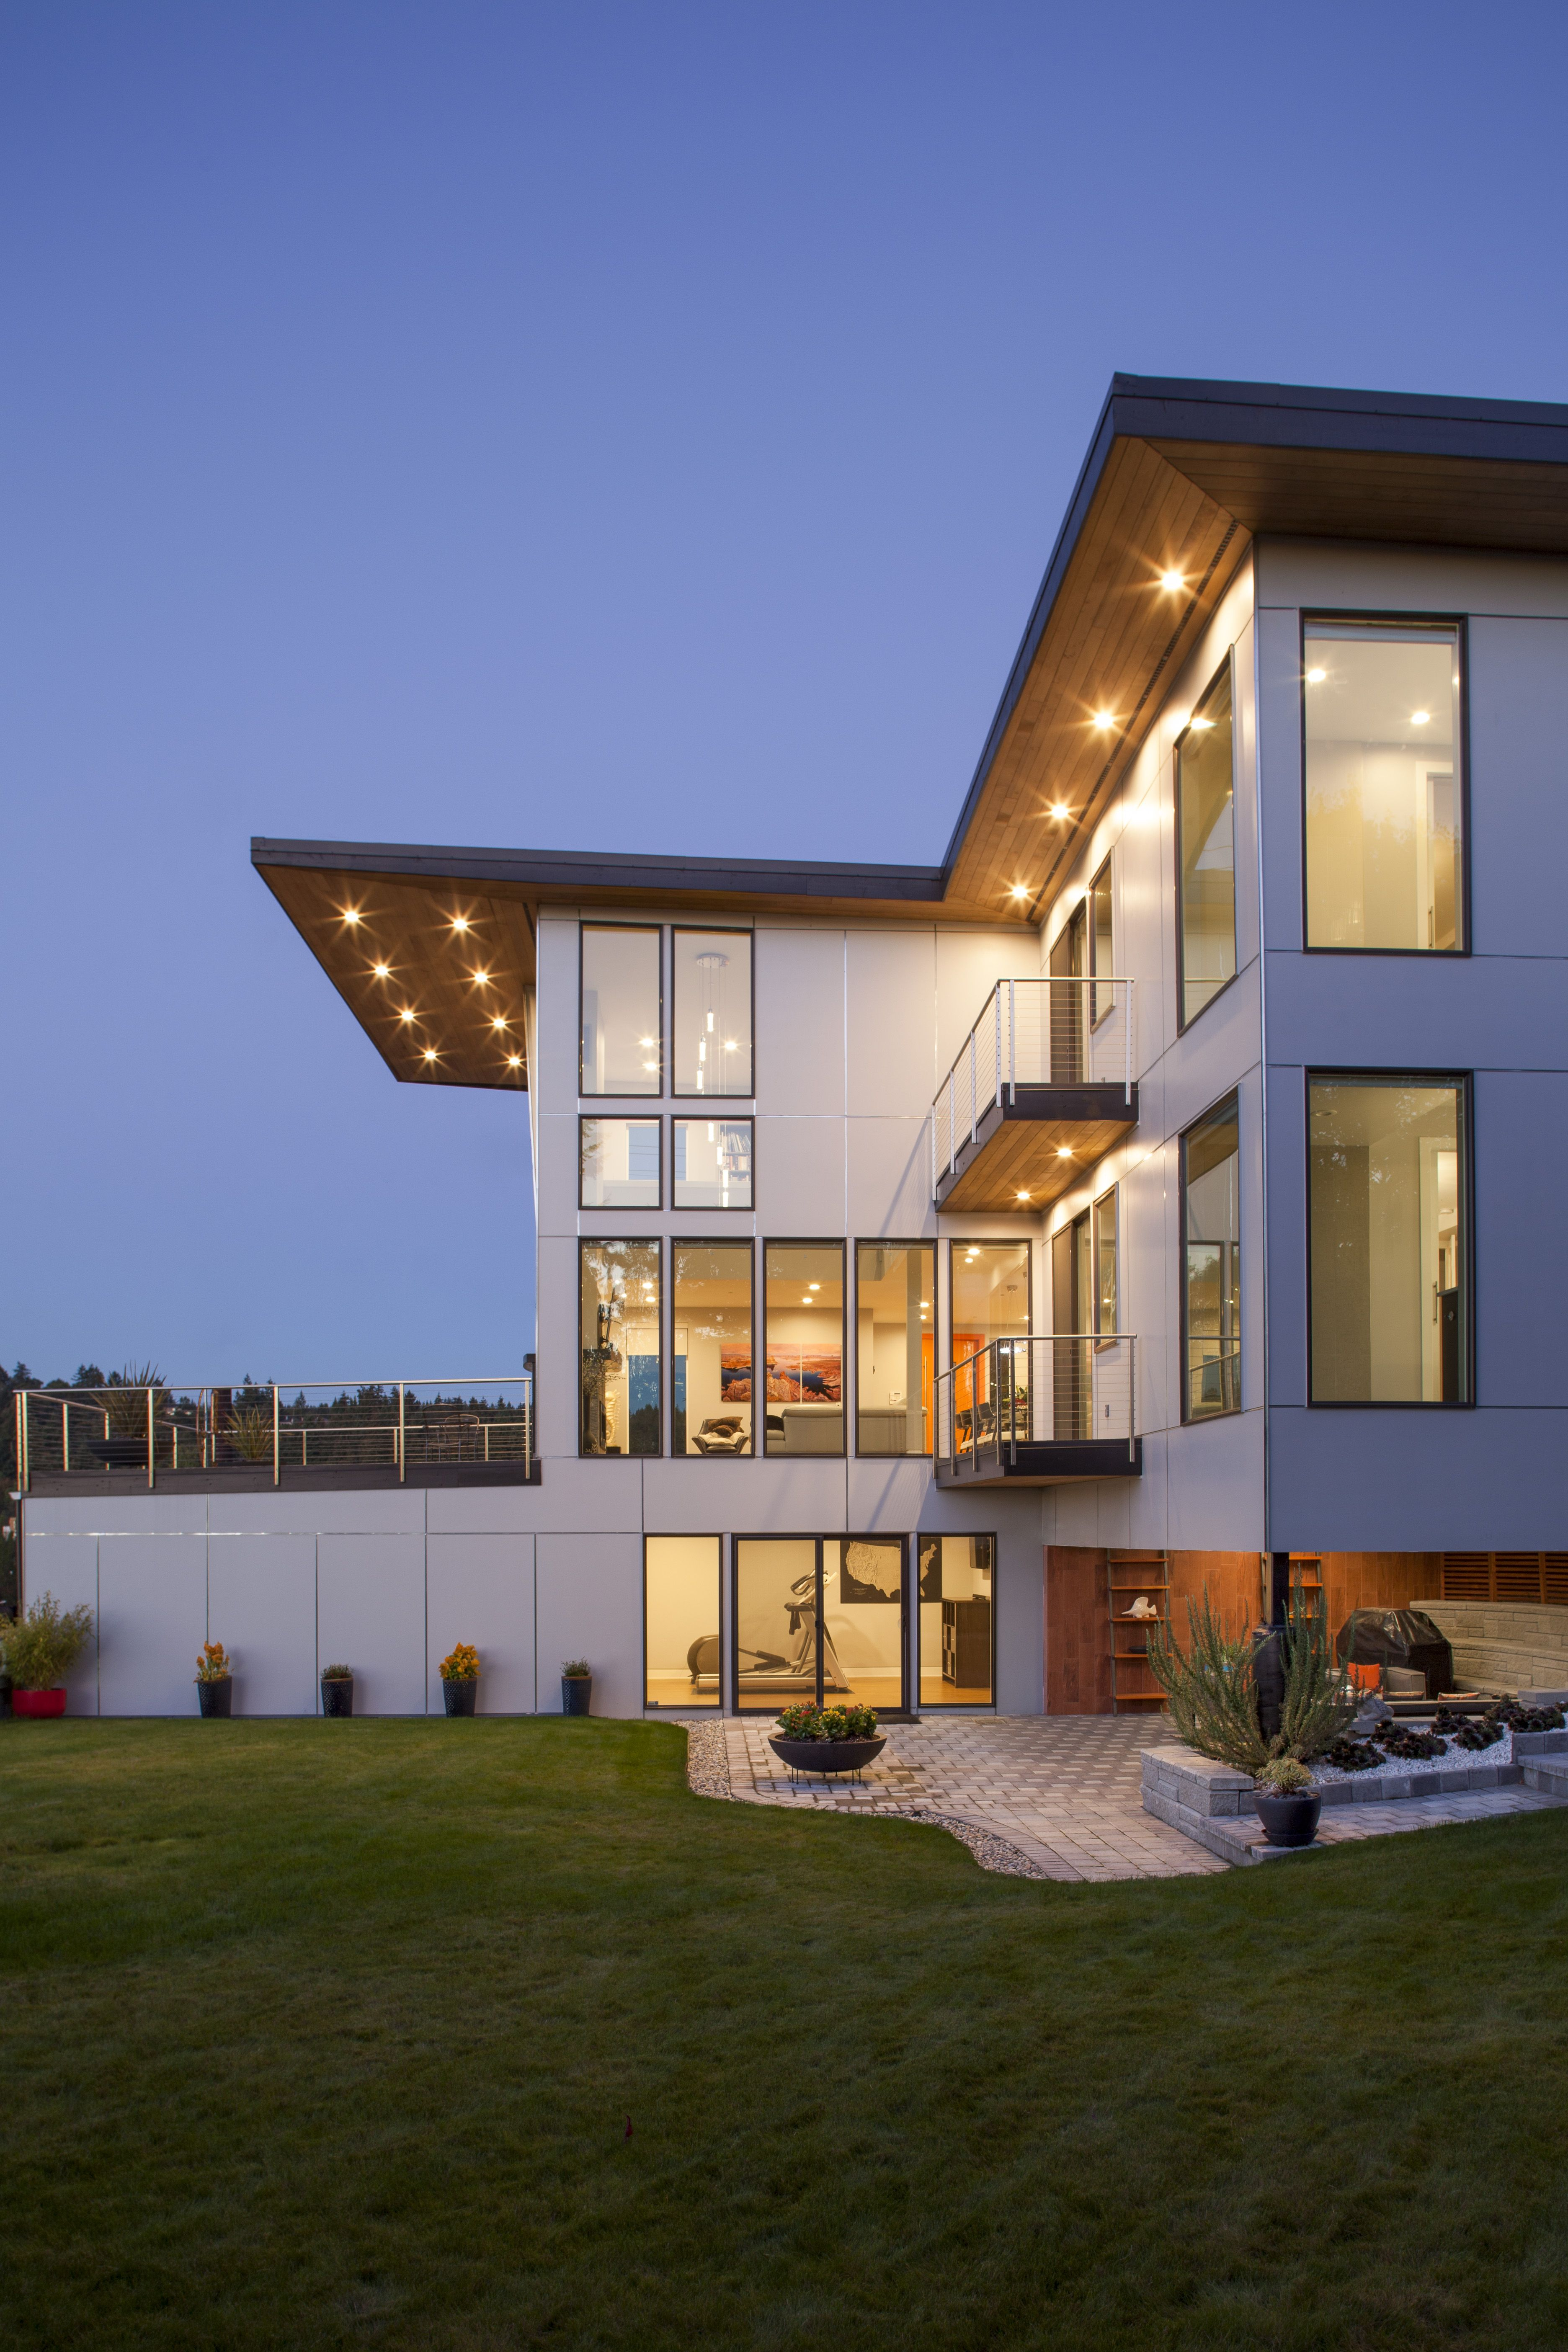 Modern House Designed By First Lamp Architects And Builders In Bellevue Washington Arquitectura